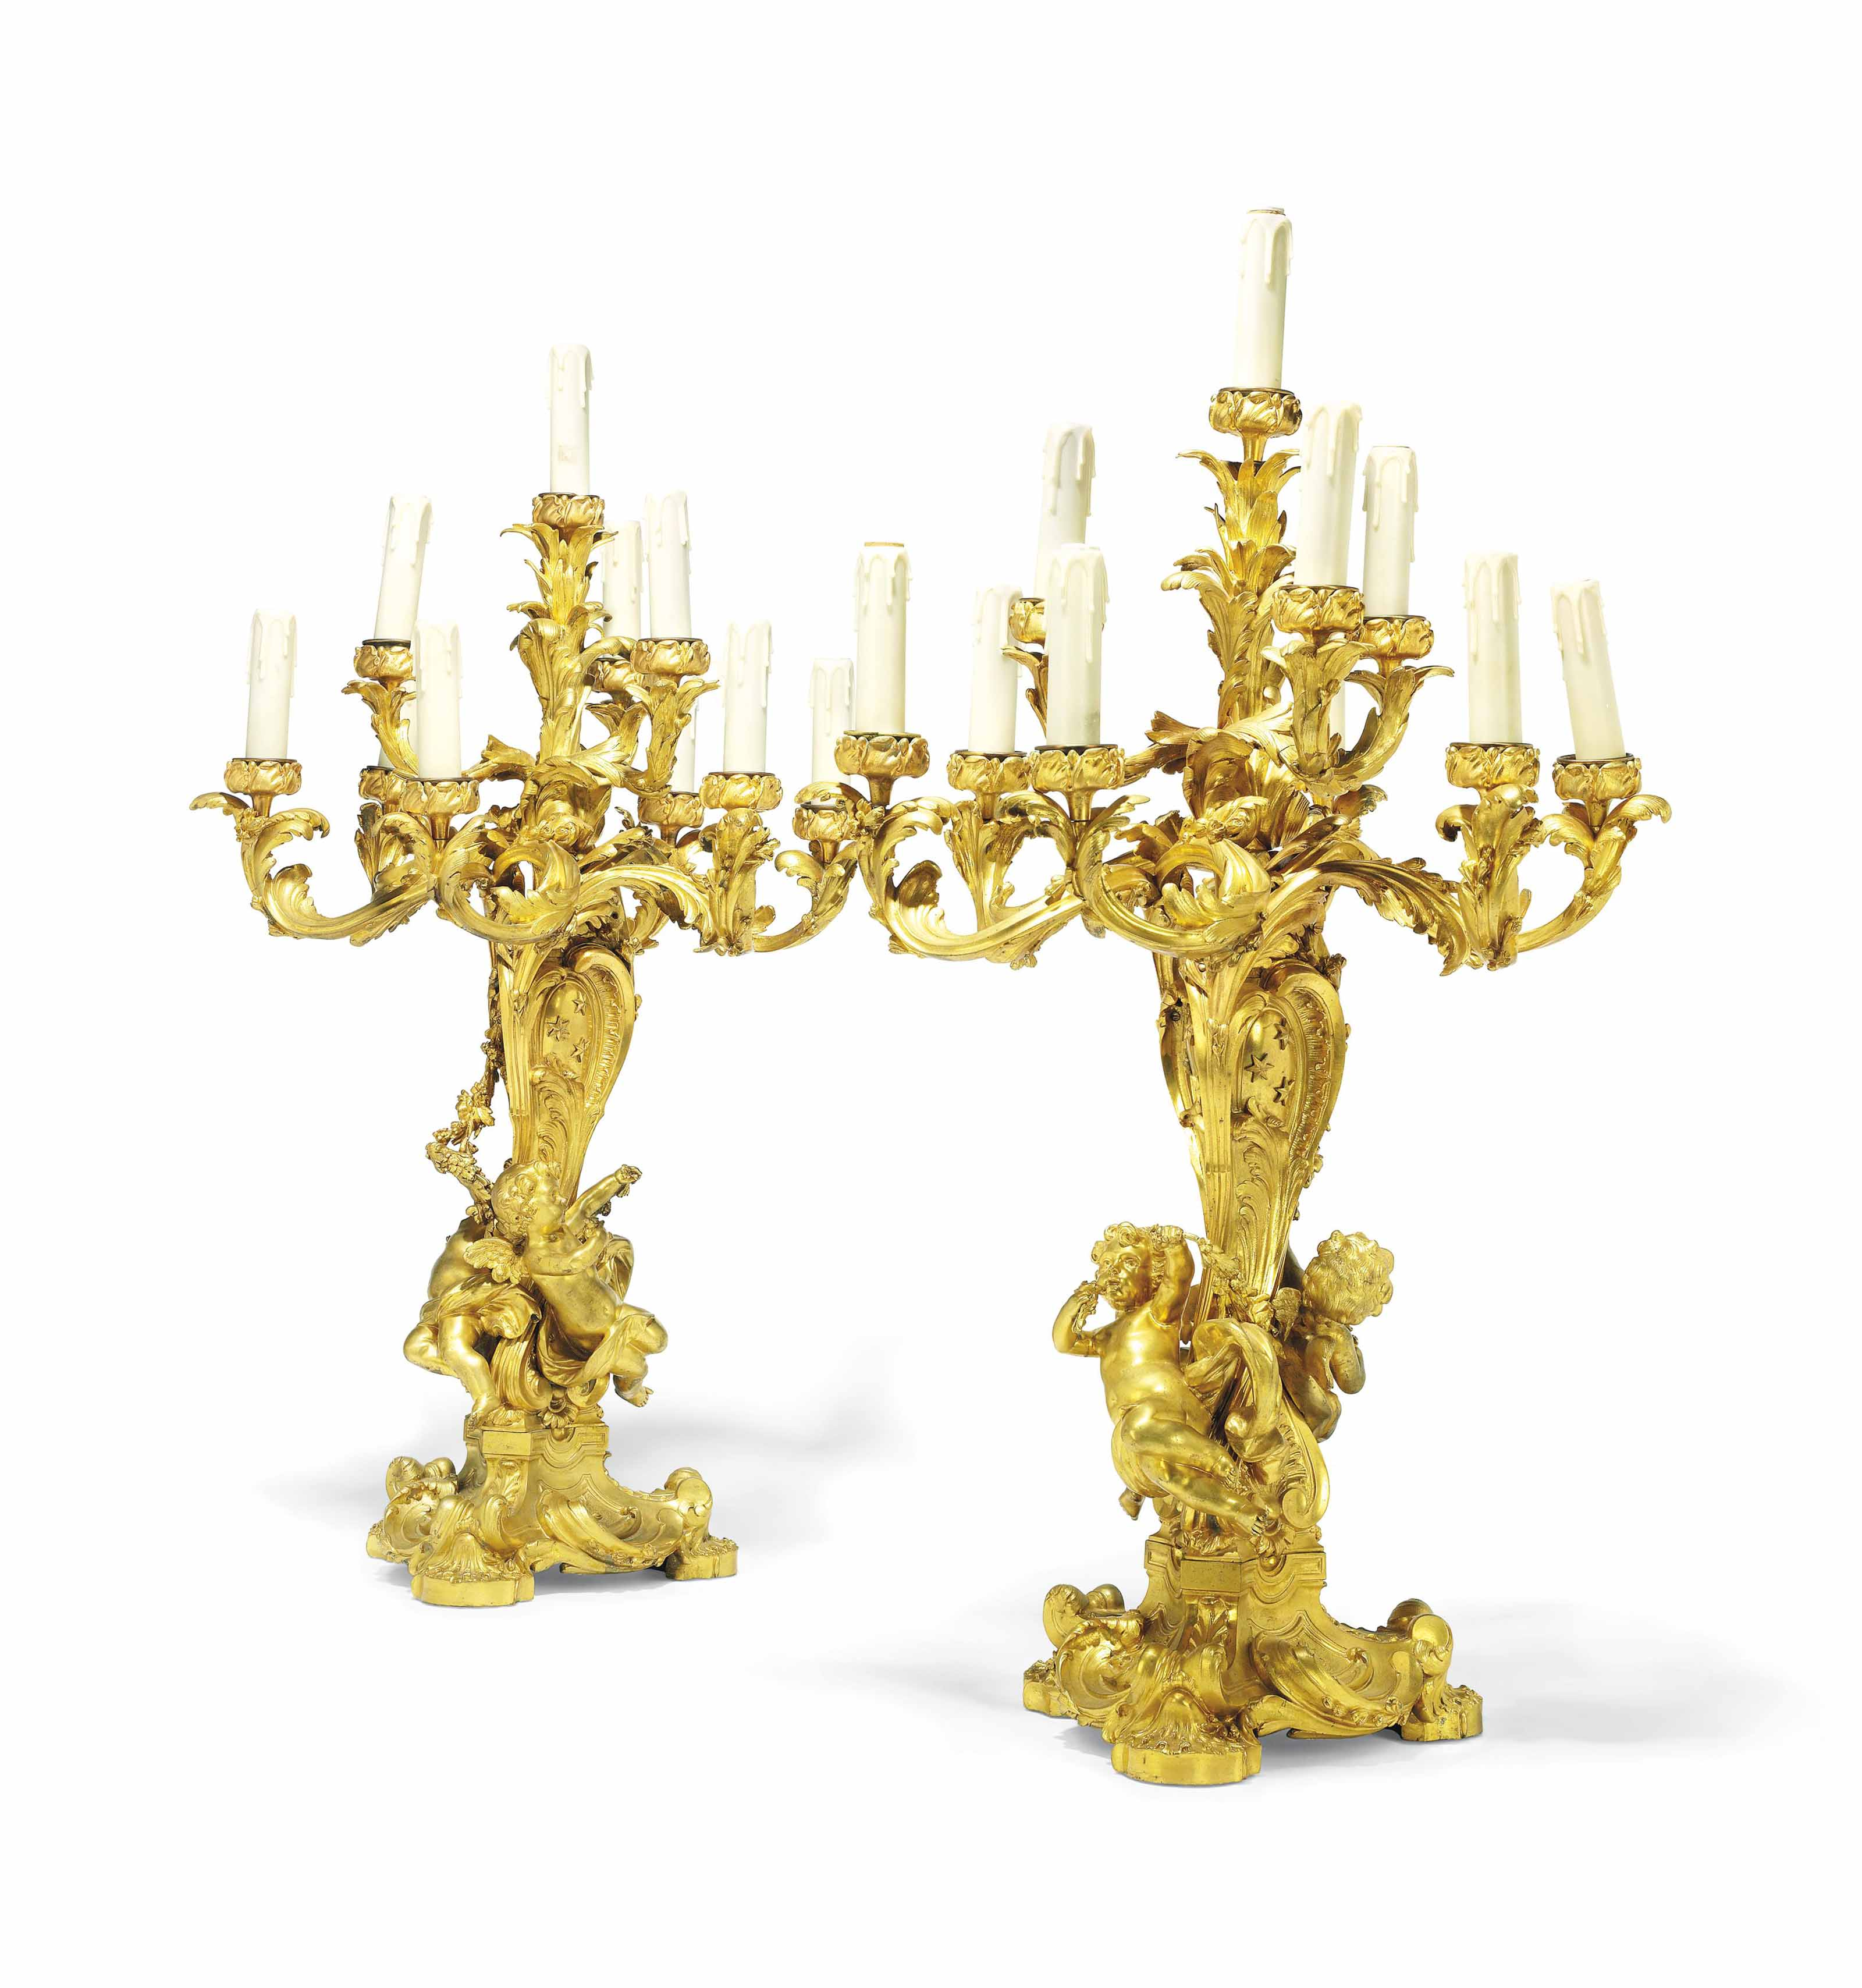 A LARGE PAIR OF FRENCH ORMOLU TEN-LIGHT CANDELABRA